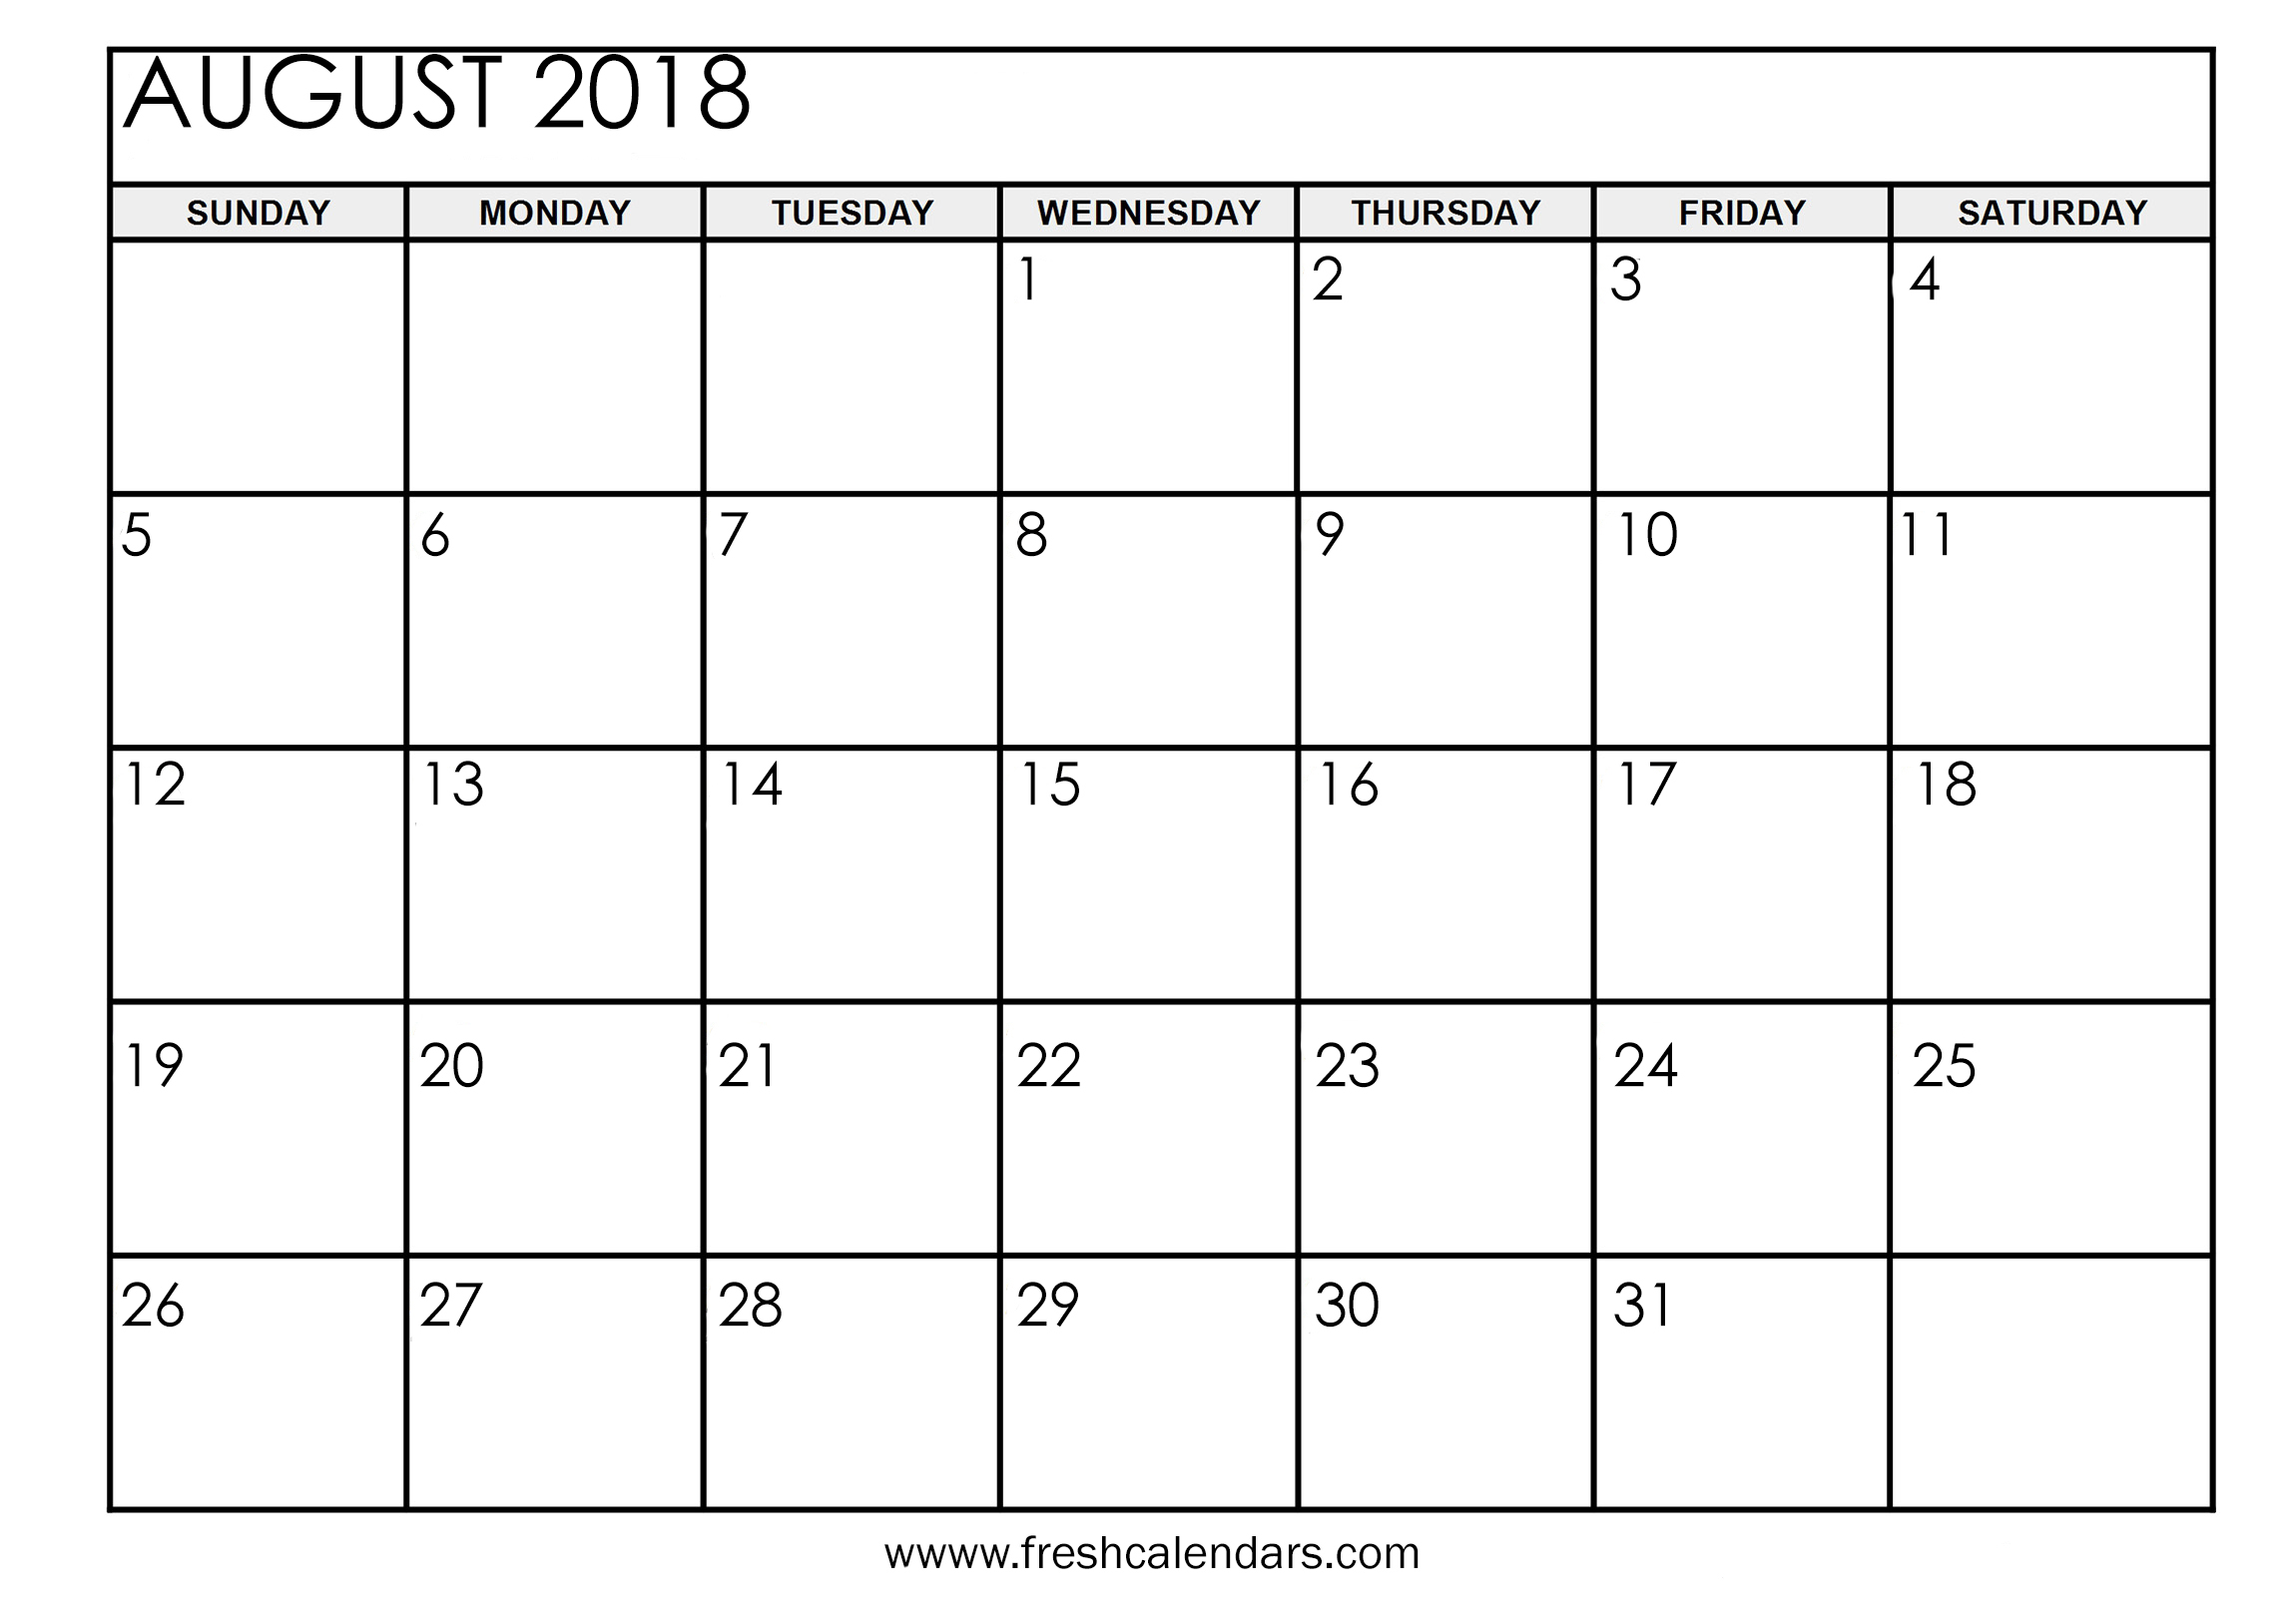 august 2018 calendars   Physic.minimalistics.co